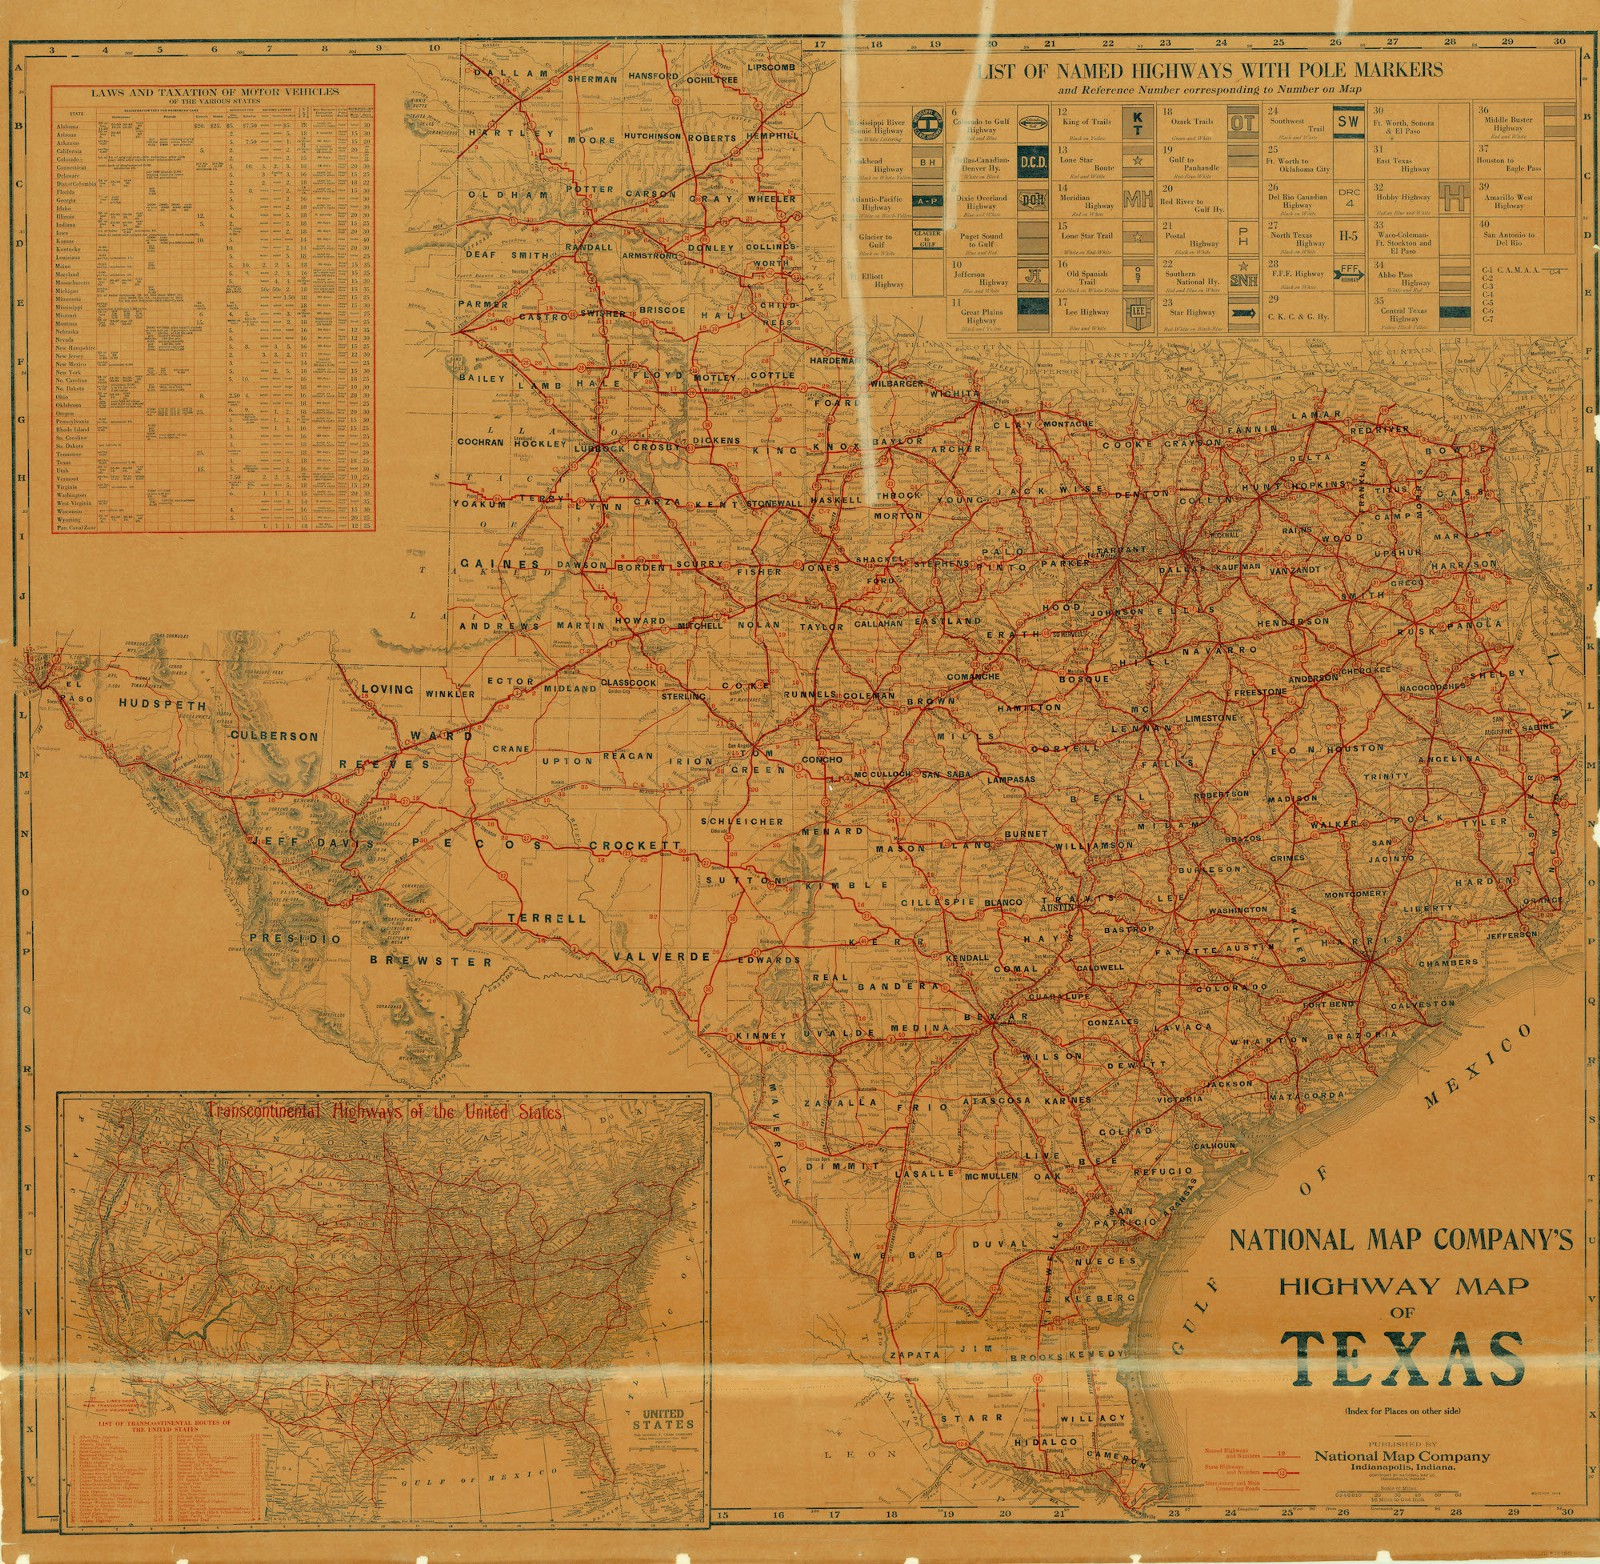 National Map Companys Highway Map of Texas 1920 Save Texas